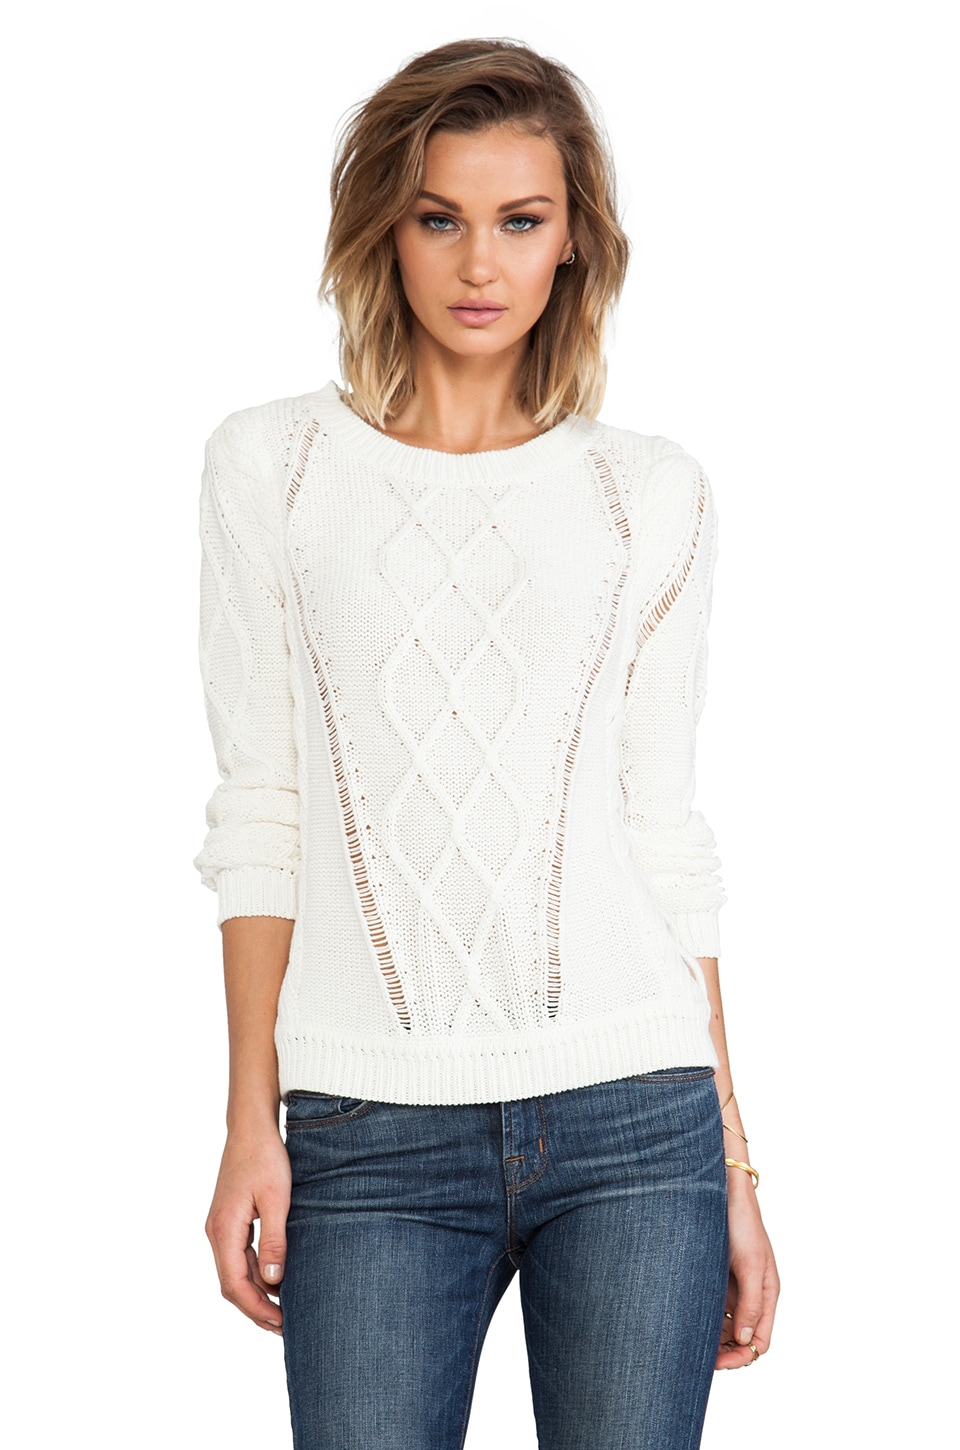 Diane von Furstenberg Lakota Sweater in Ivory